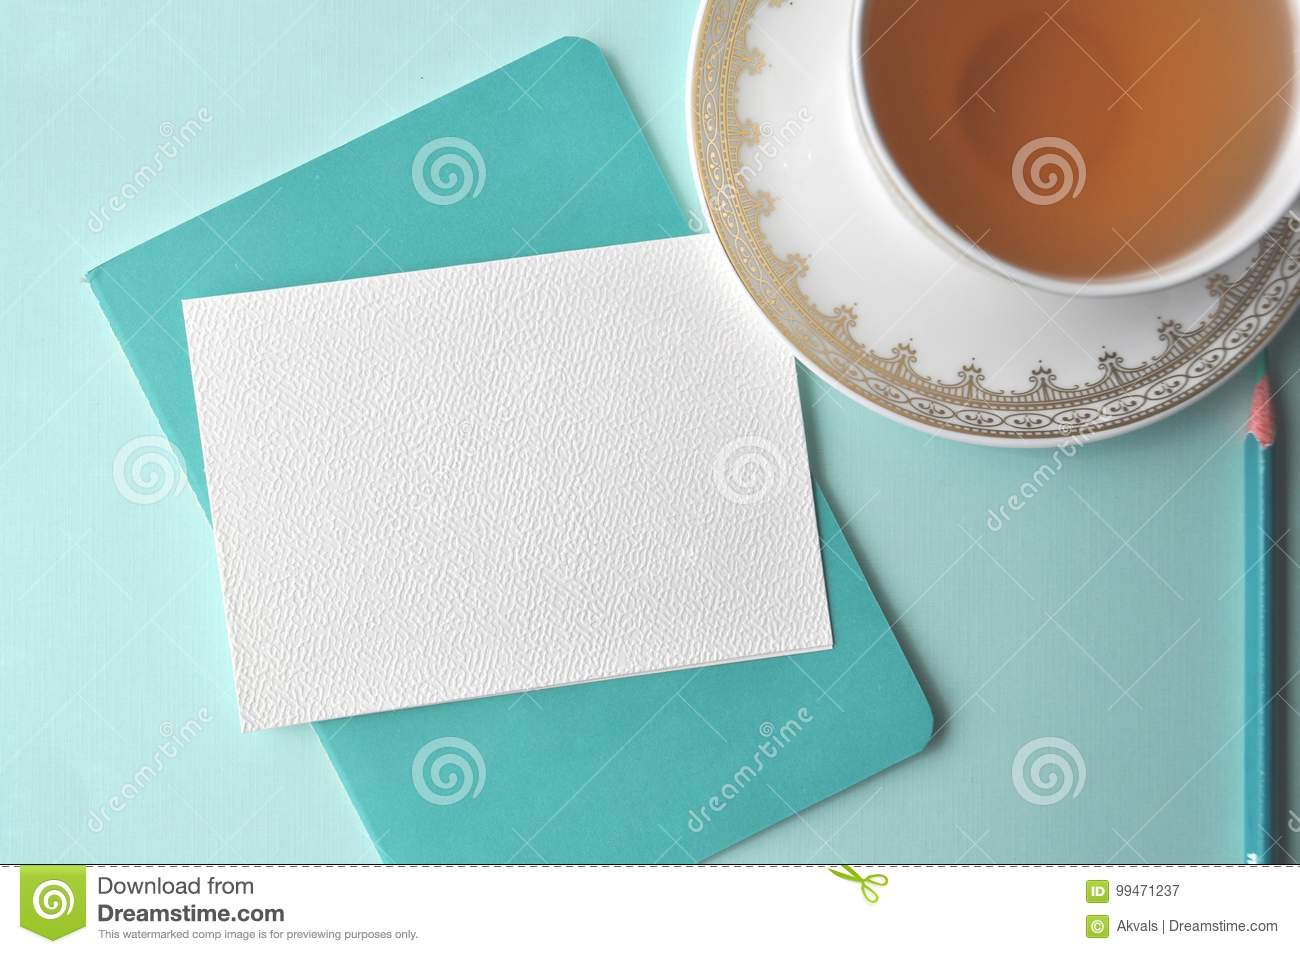 Fine white porcelain china cup with tea, teal pencil, white note card and aqua mint blue background